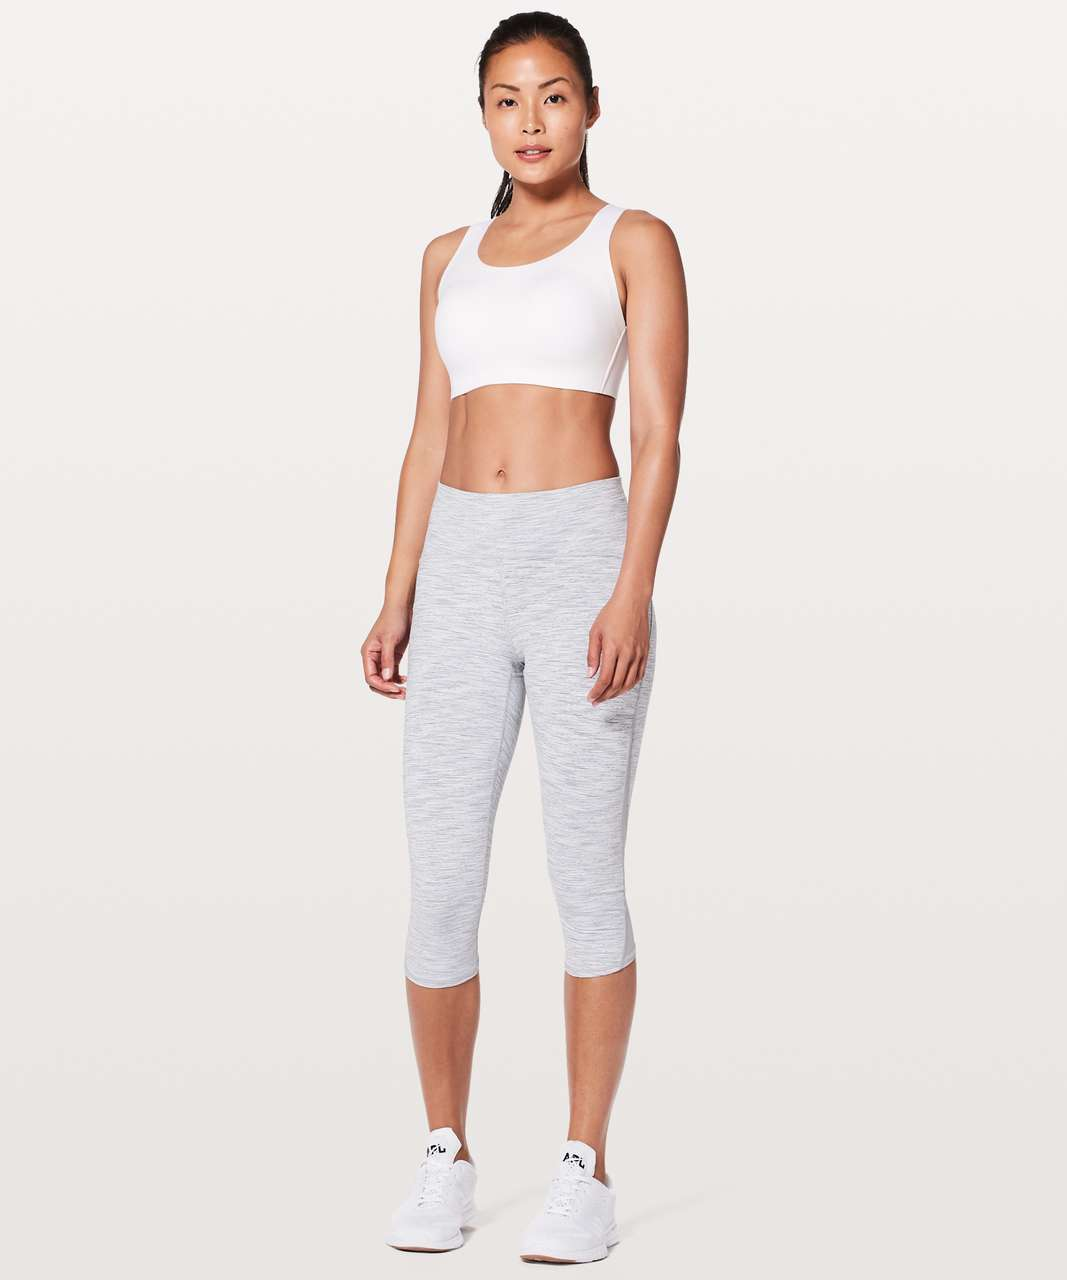 Lululemon Enlite Bra - White (First Release)